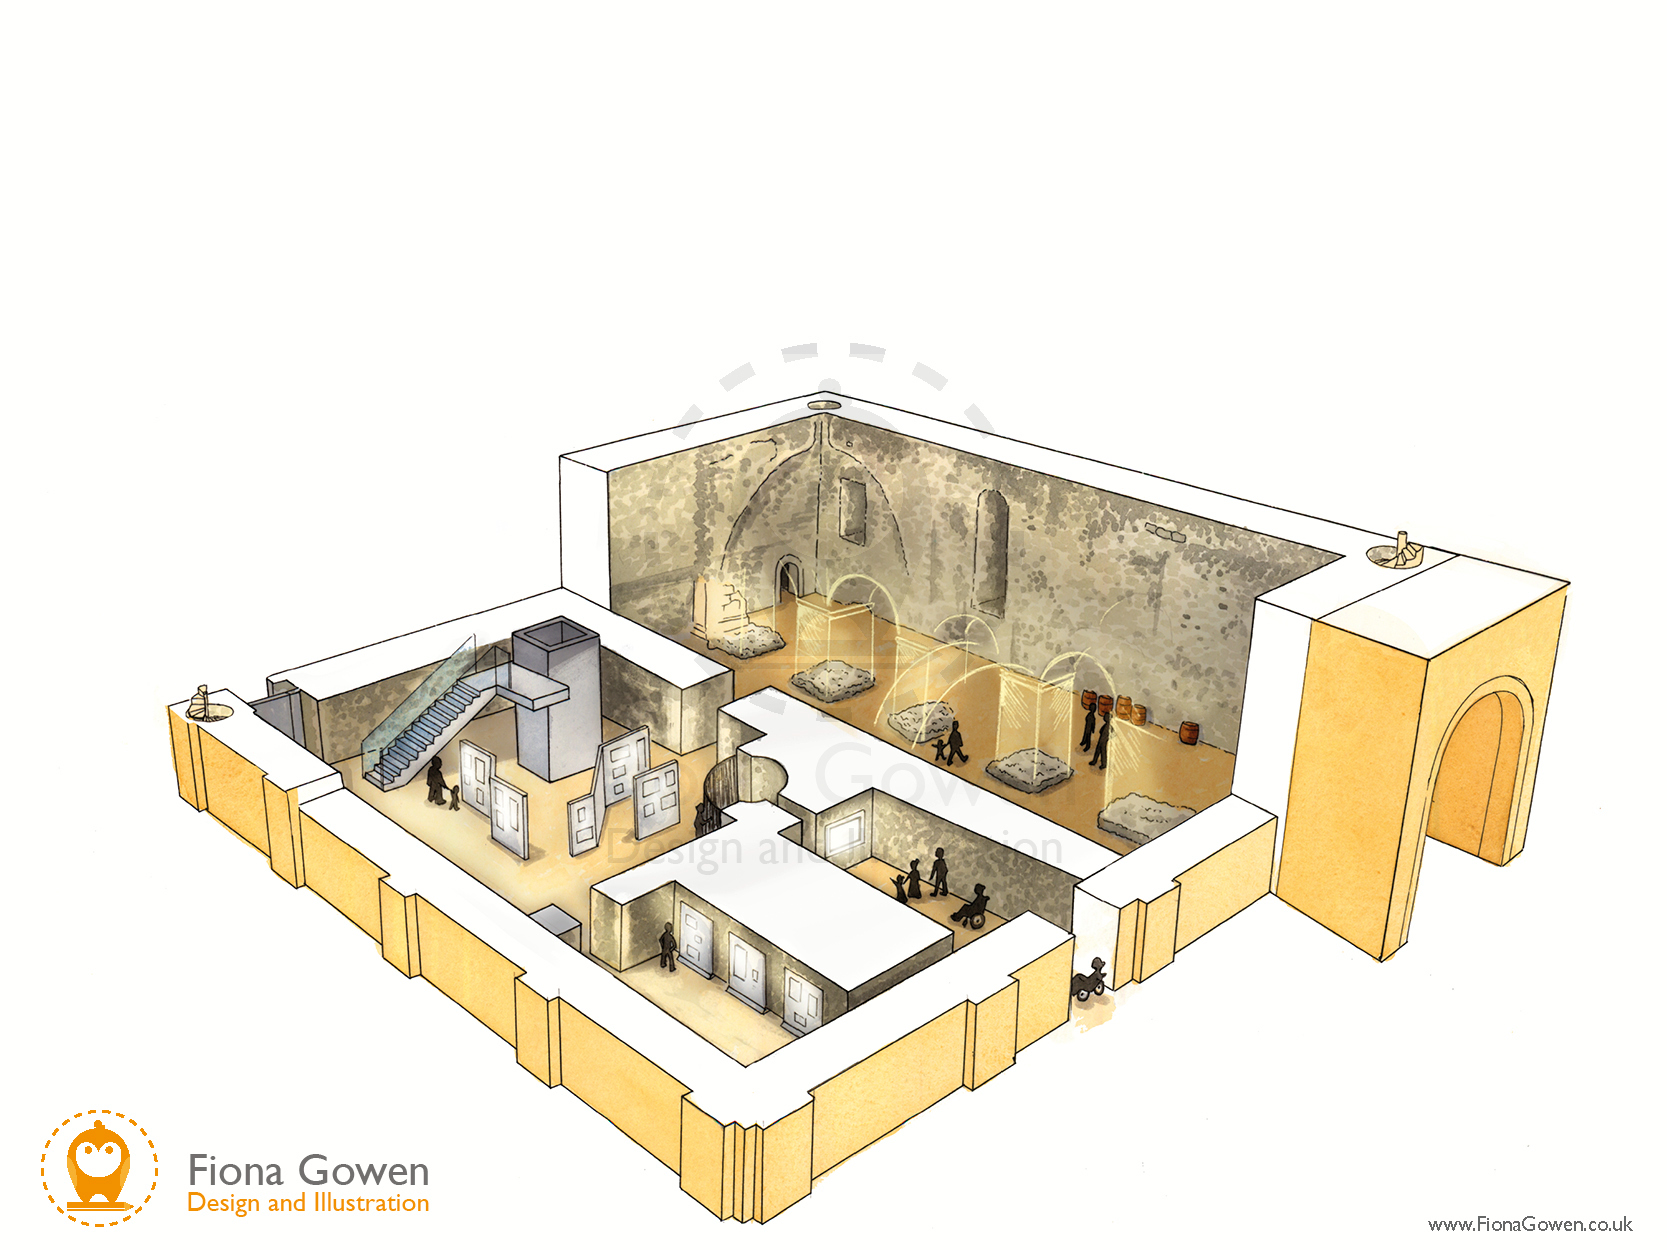 An artists impression cut though illustration of the Ground floor of the proposed Norwich Castle Keep redevelopment project. Shows visitors looking at reconstructed arches and display panels.